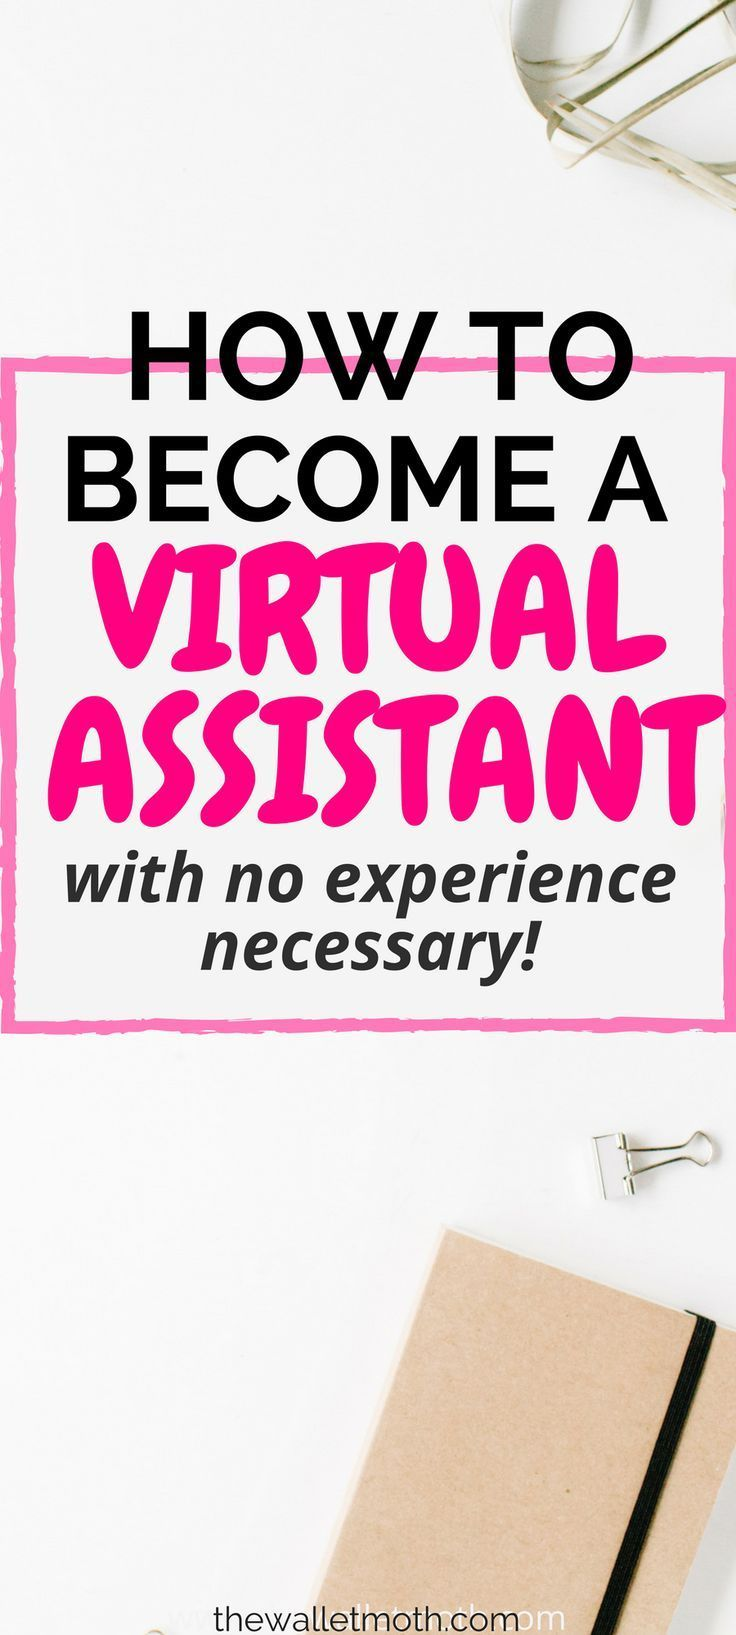 How to a Virtual Assistant Make money photography